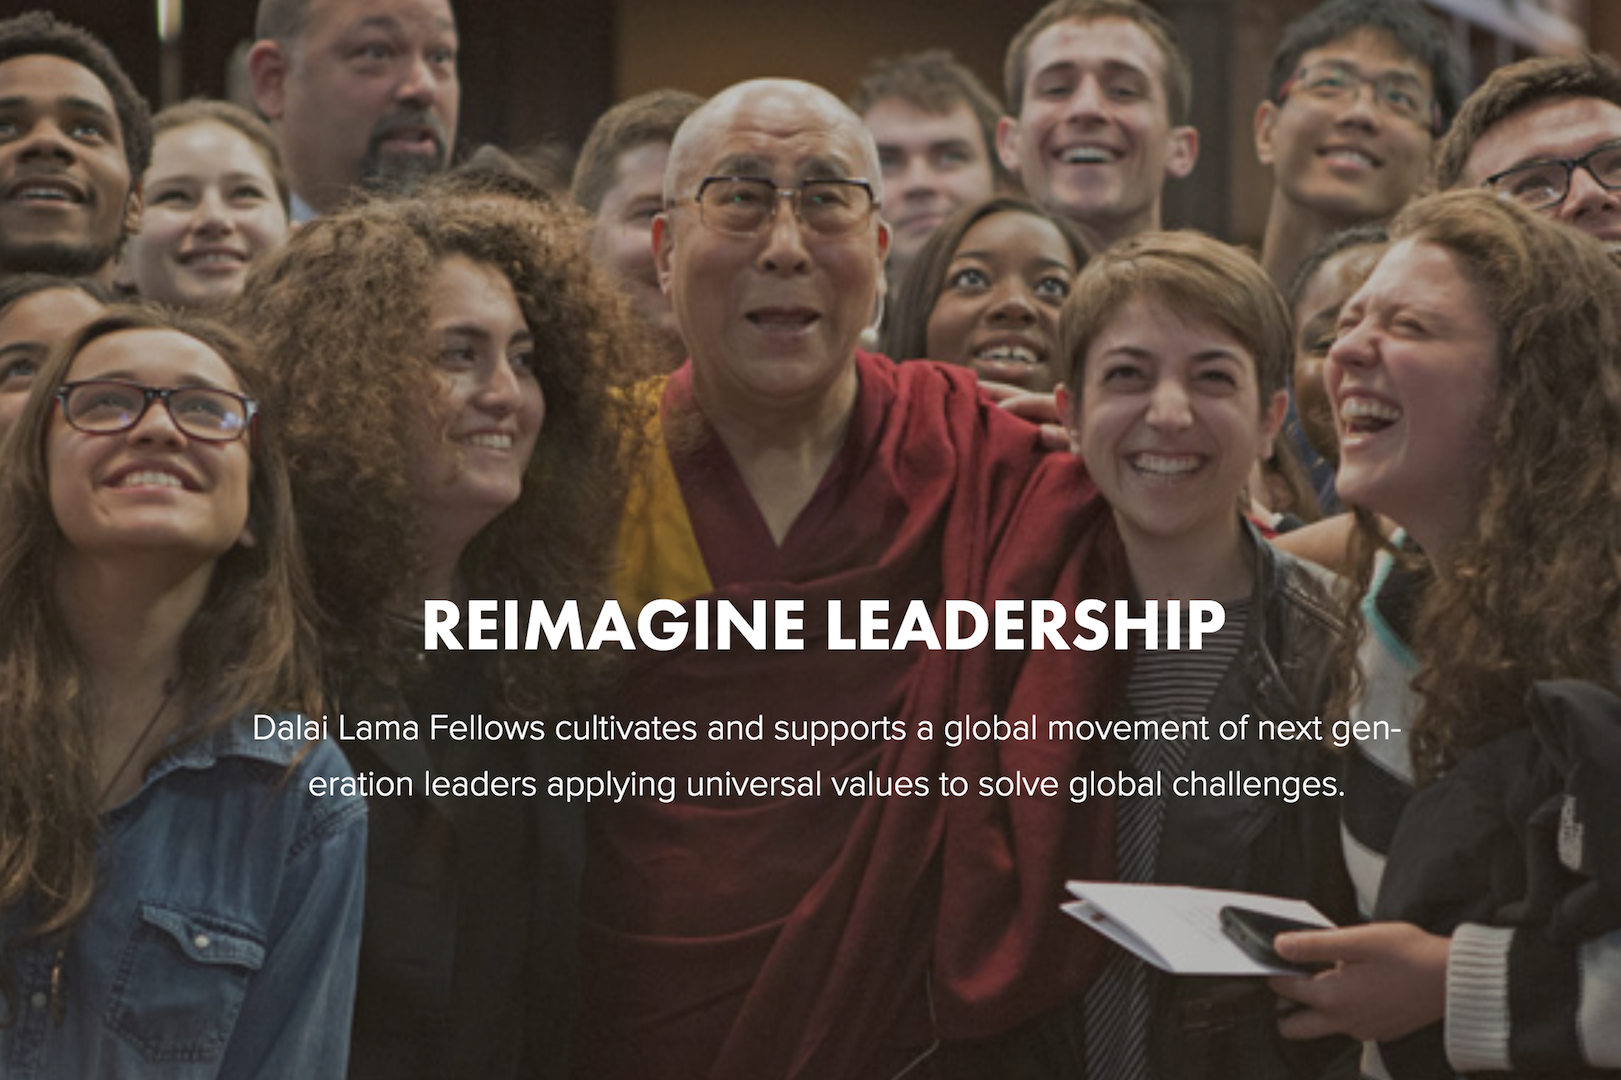 Image showing Dalai Lama surrounded by happy looking fellows; Reimagine Leadership: Dalai Lama Fellows cultivates and supports a global movement of next generation leaders applying universal values to solve global challenges